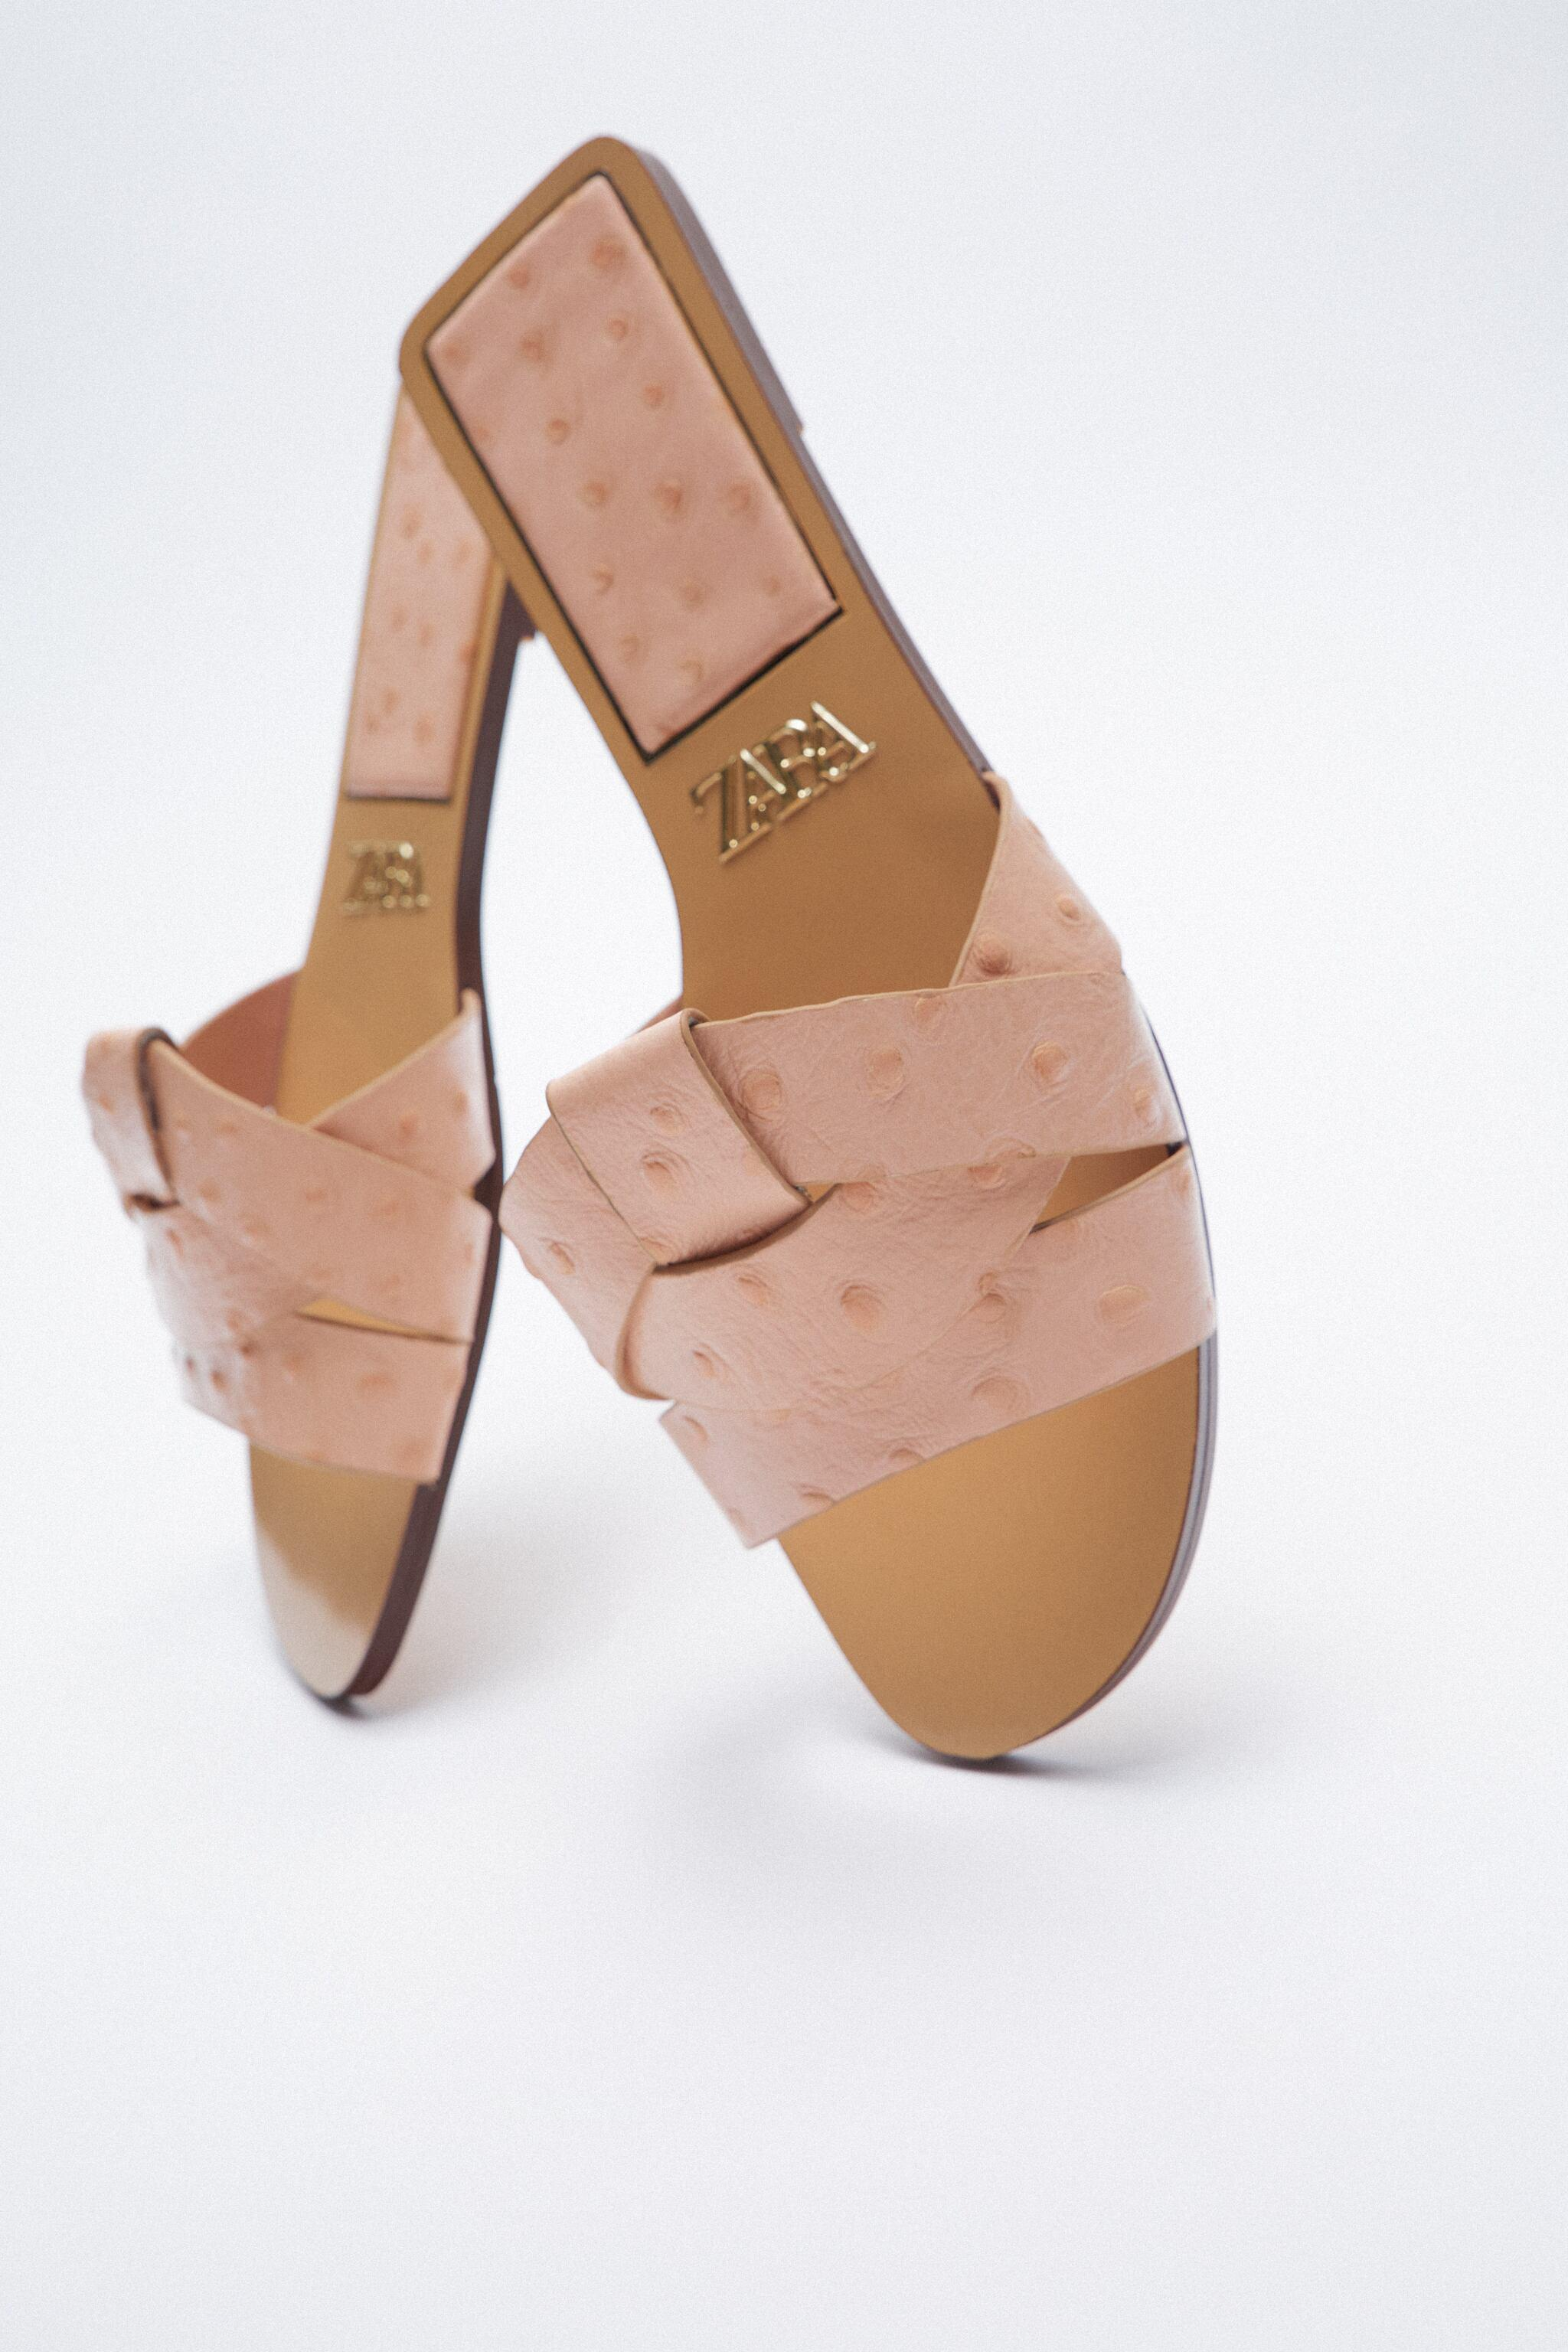 LOW HEELED CROSSED LEATHER SANDALS 4